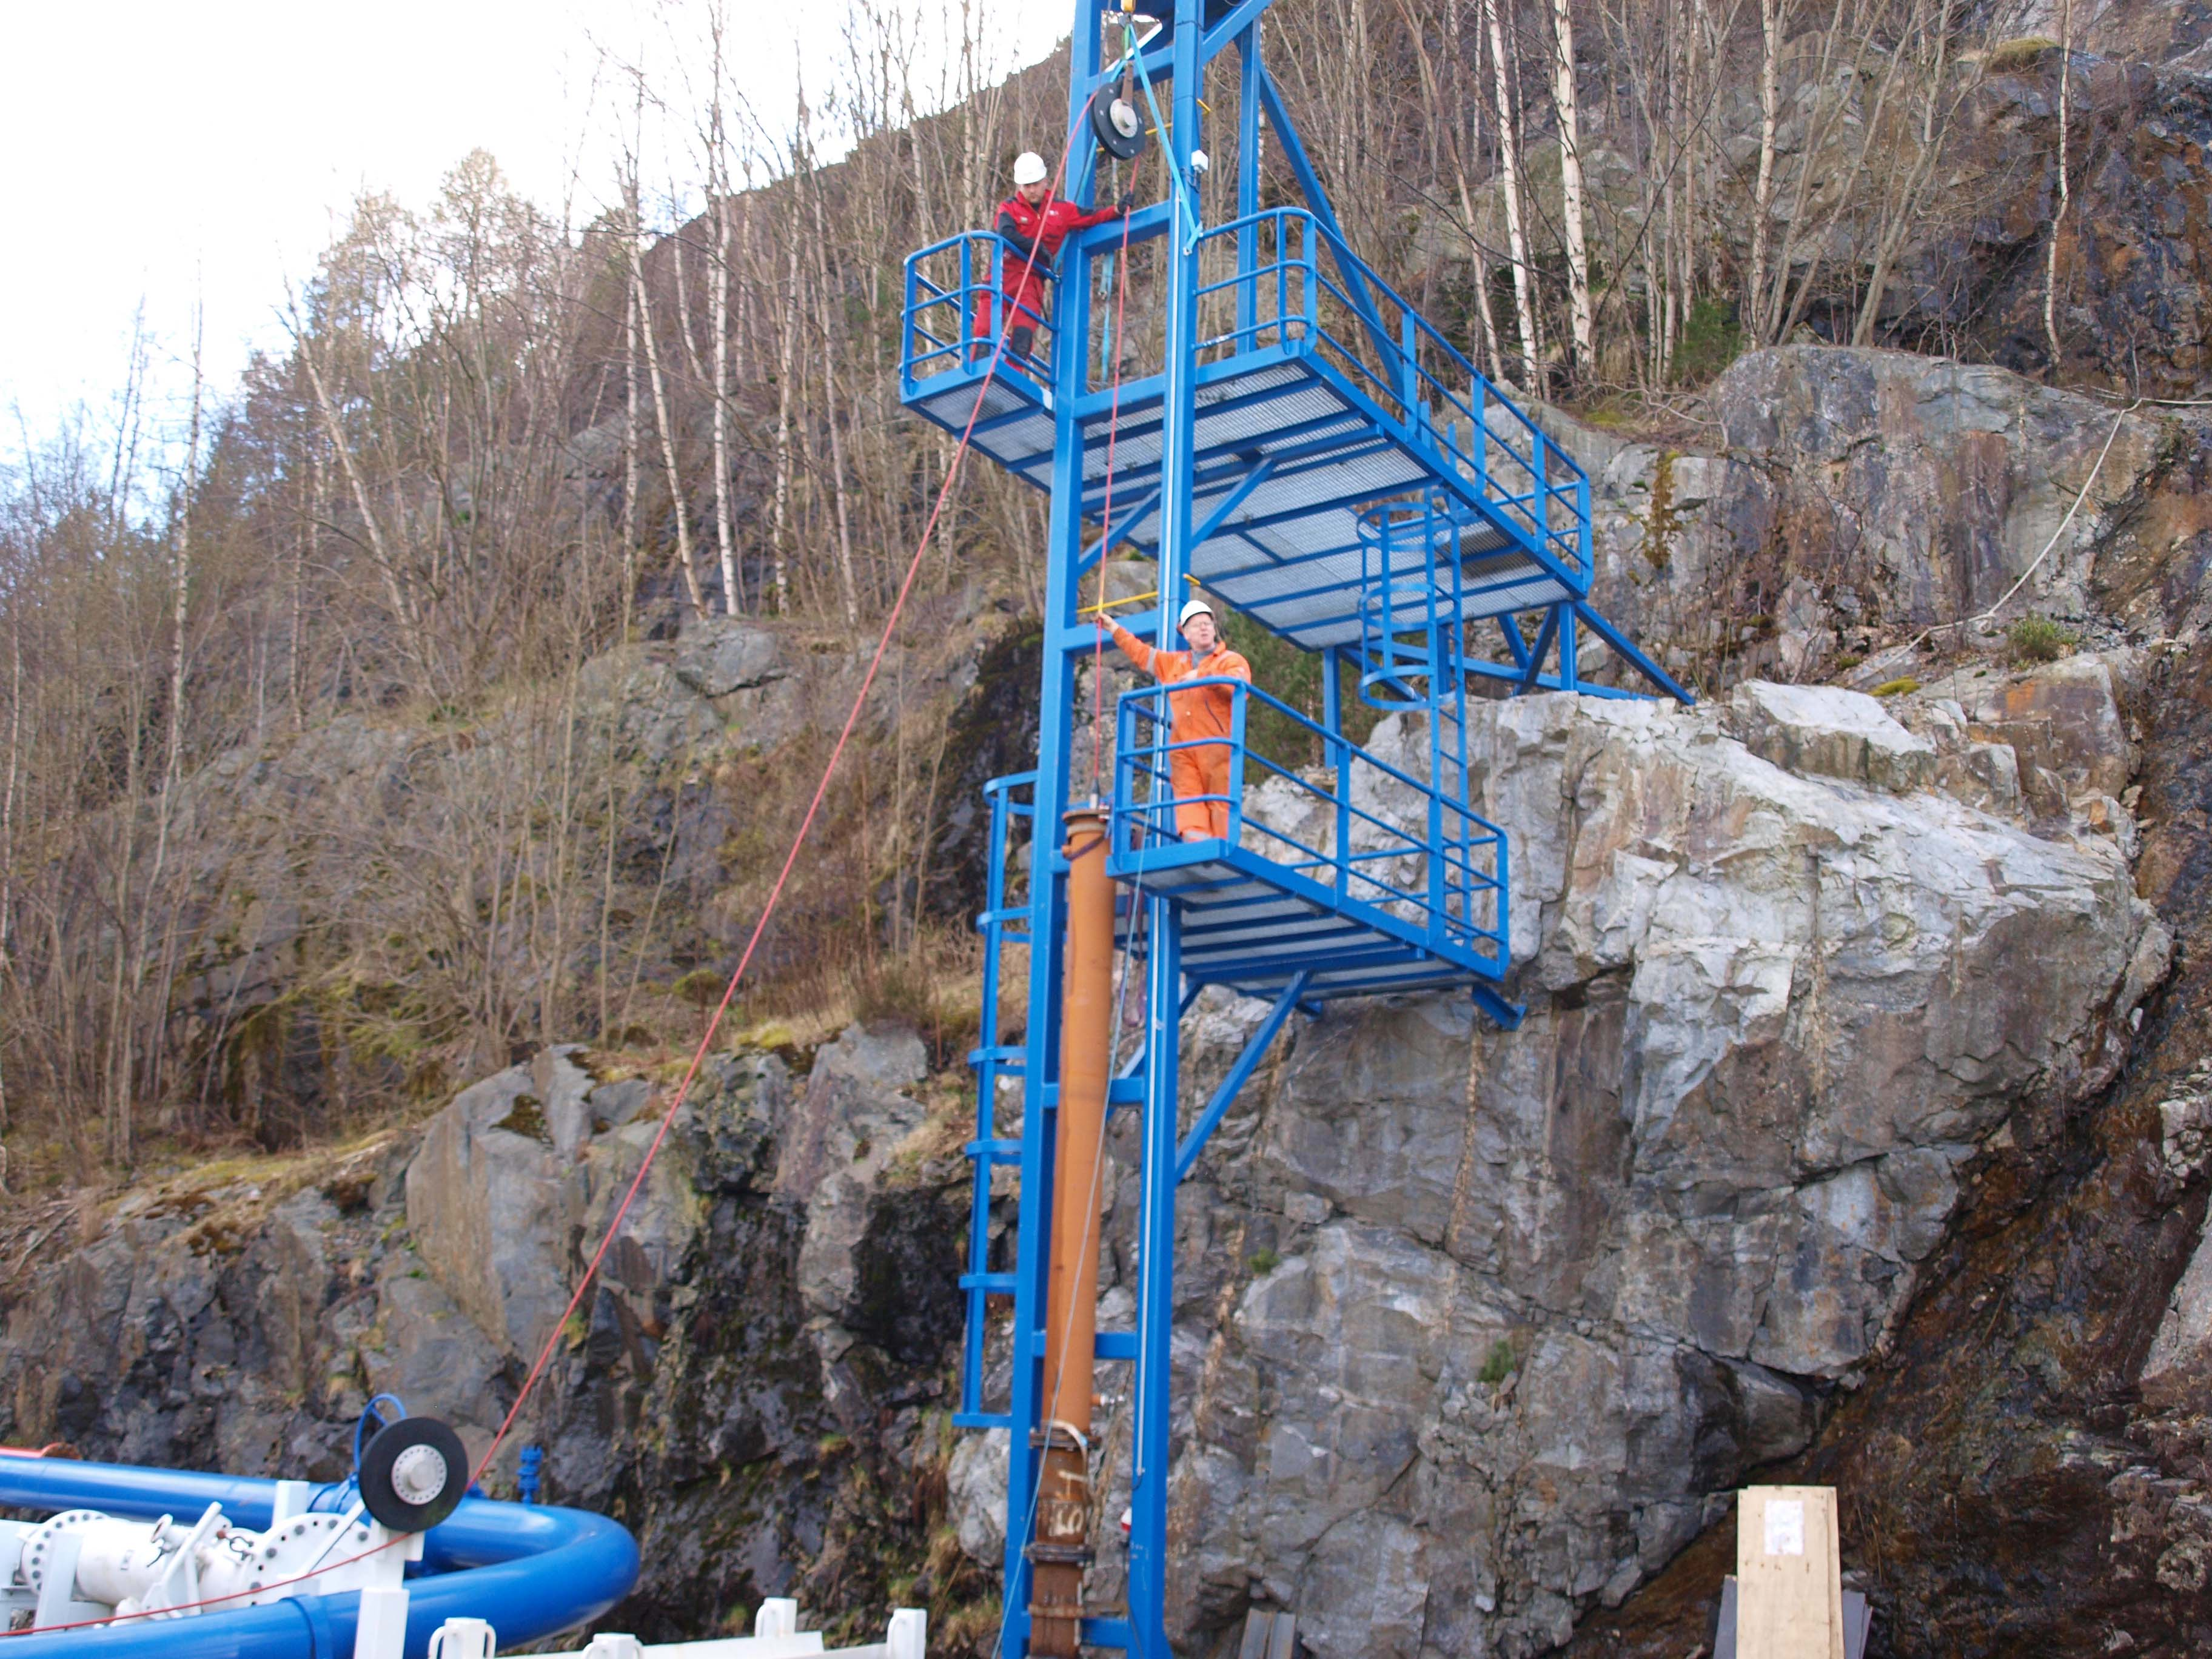 Figure 2 – Riser tower for testing vertical inspections